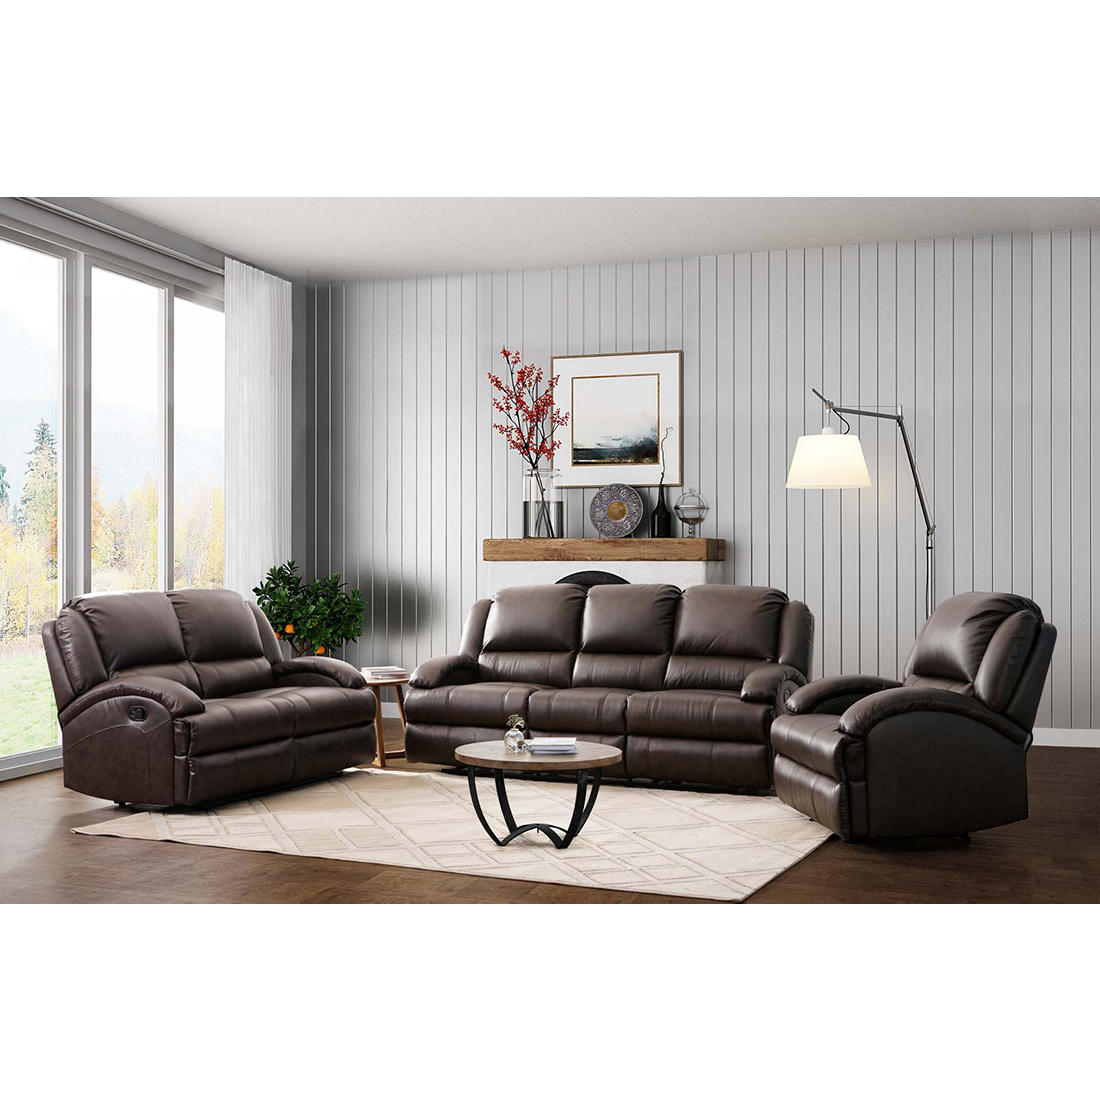 Pleasant Abbyson Leather Sofa Reviews Lamtechconsult Wood Chair Design Ideas Lamtechconsultcom